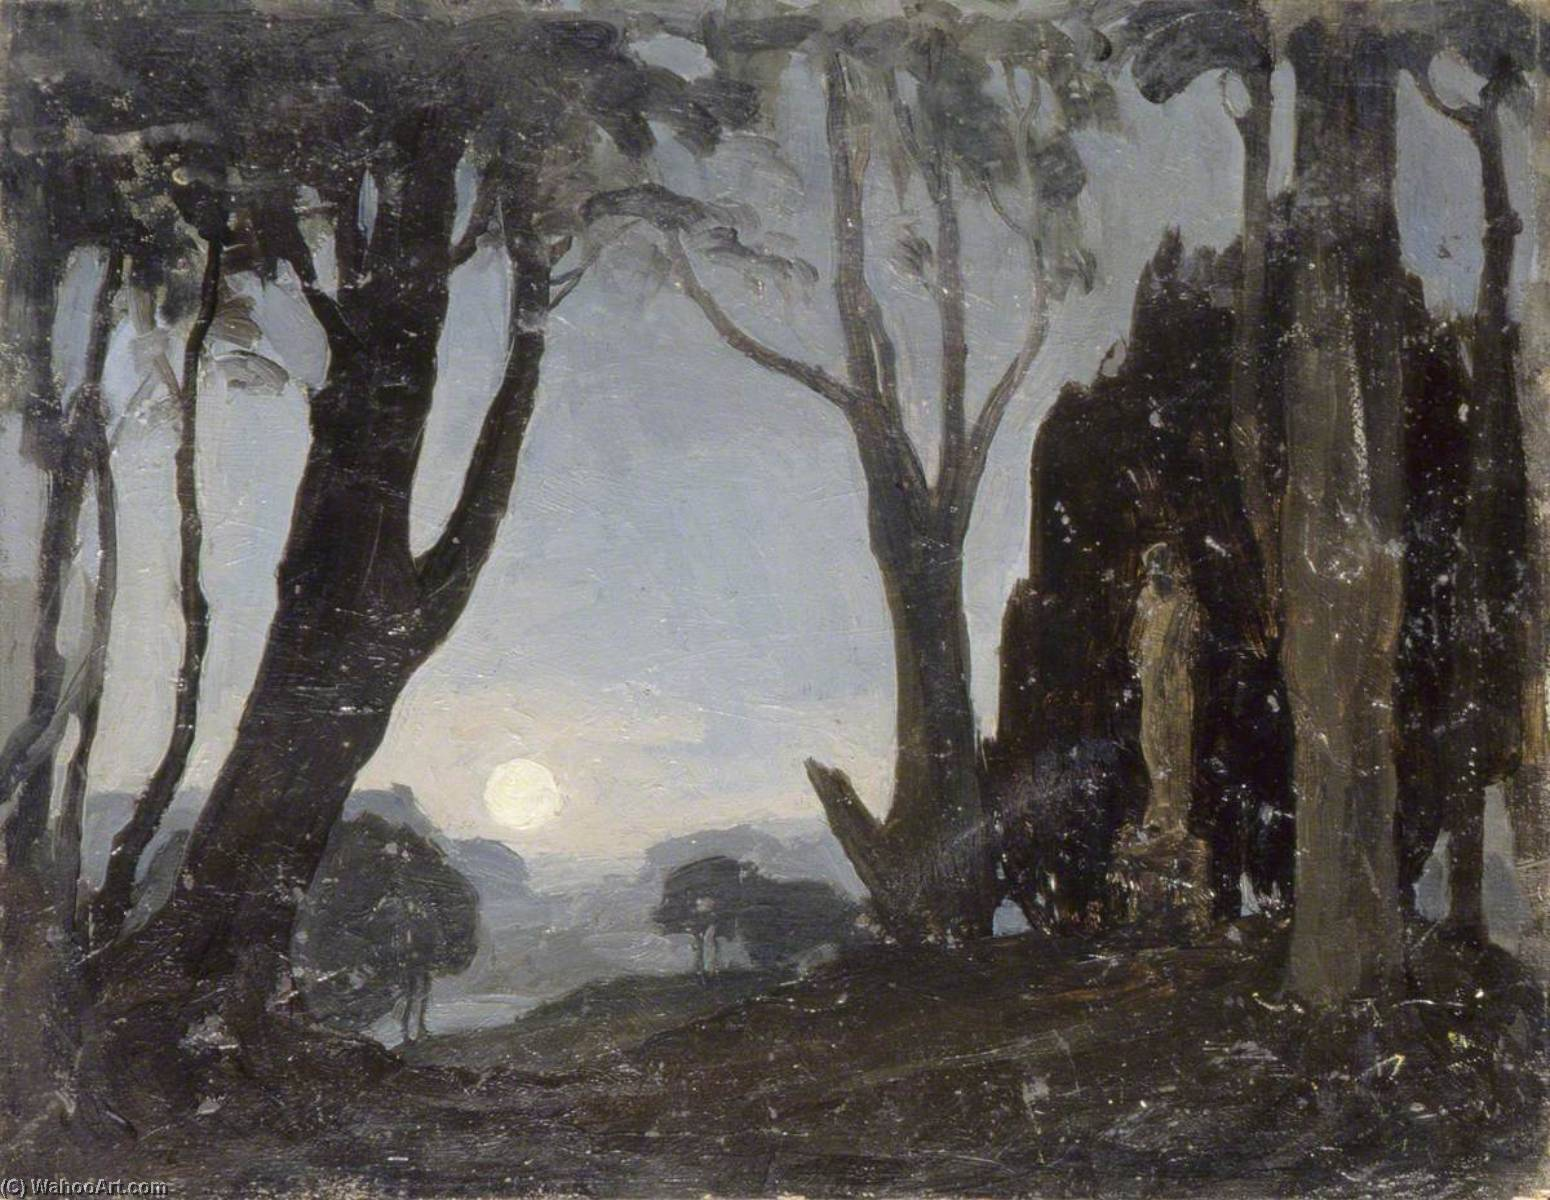 Moonlight Scene with a Statue, 1930 by Gunning King | Famous Paintings Reproductions | WahooArt.com